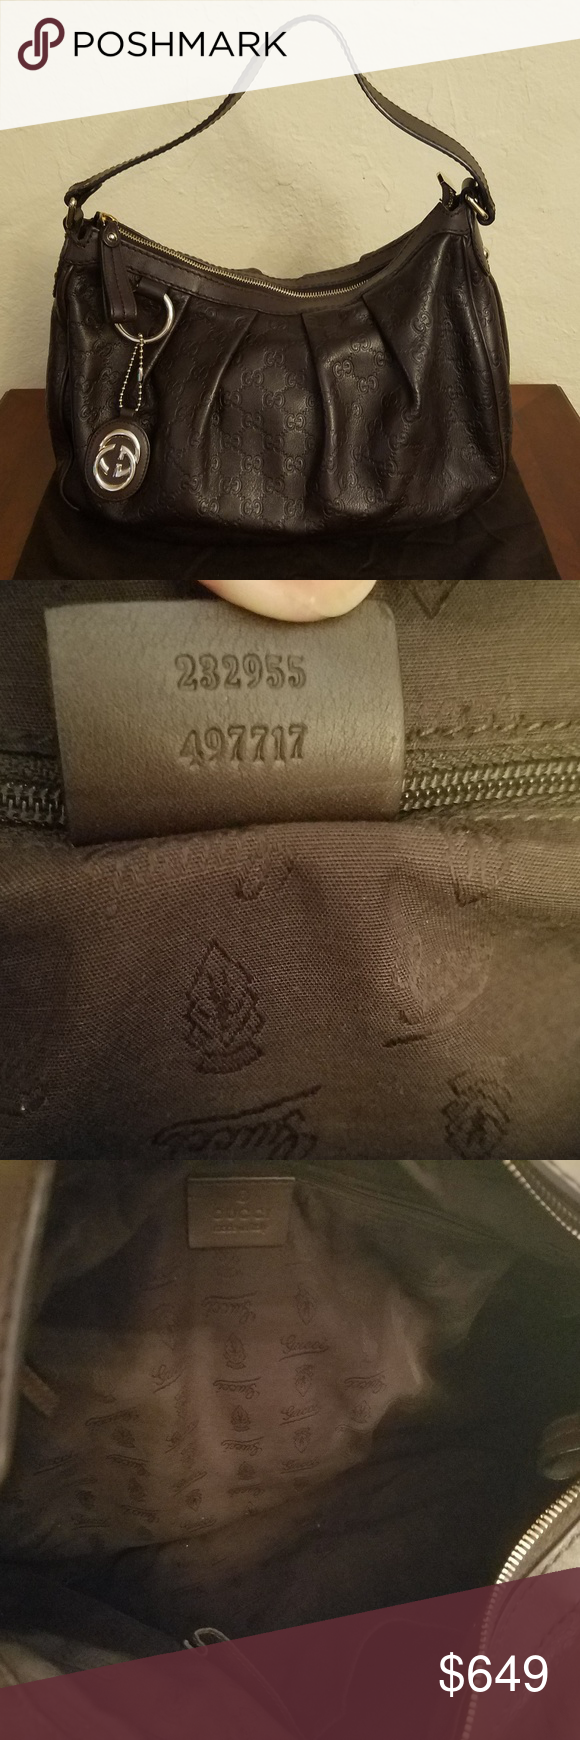 396af493ff3 Gucci Guccissima Medium Sukey Hobo Authentic Gucci Guccissima Medium Sukey  Hobo is crafted of pleated and